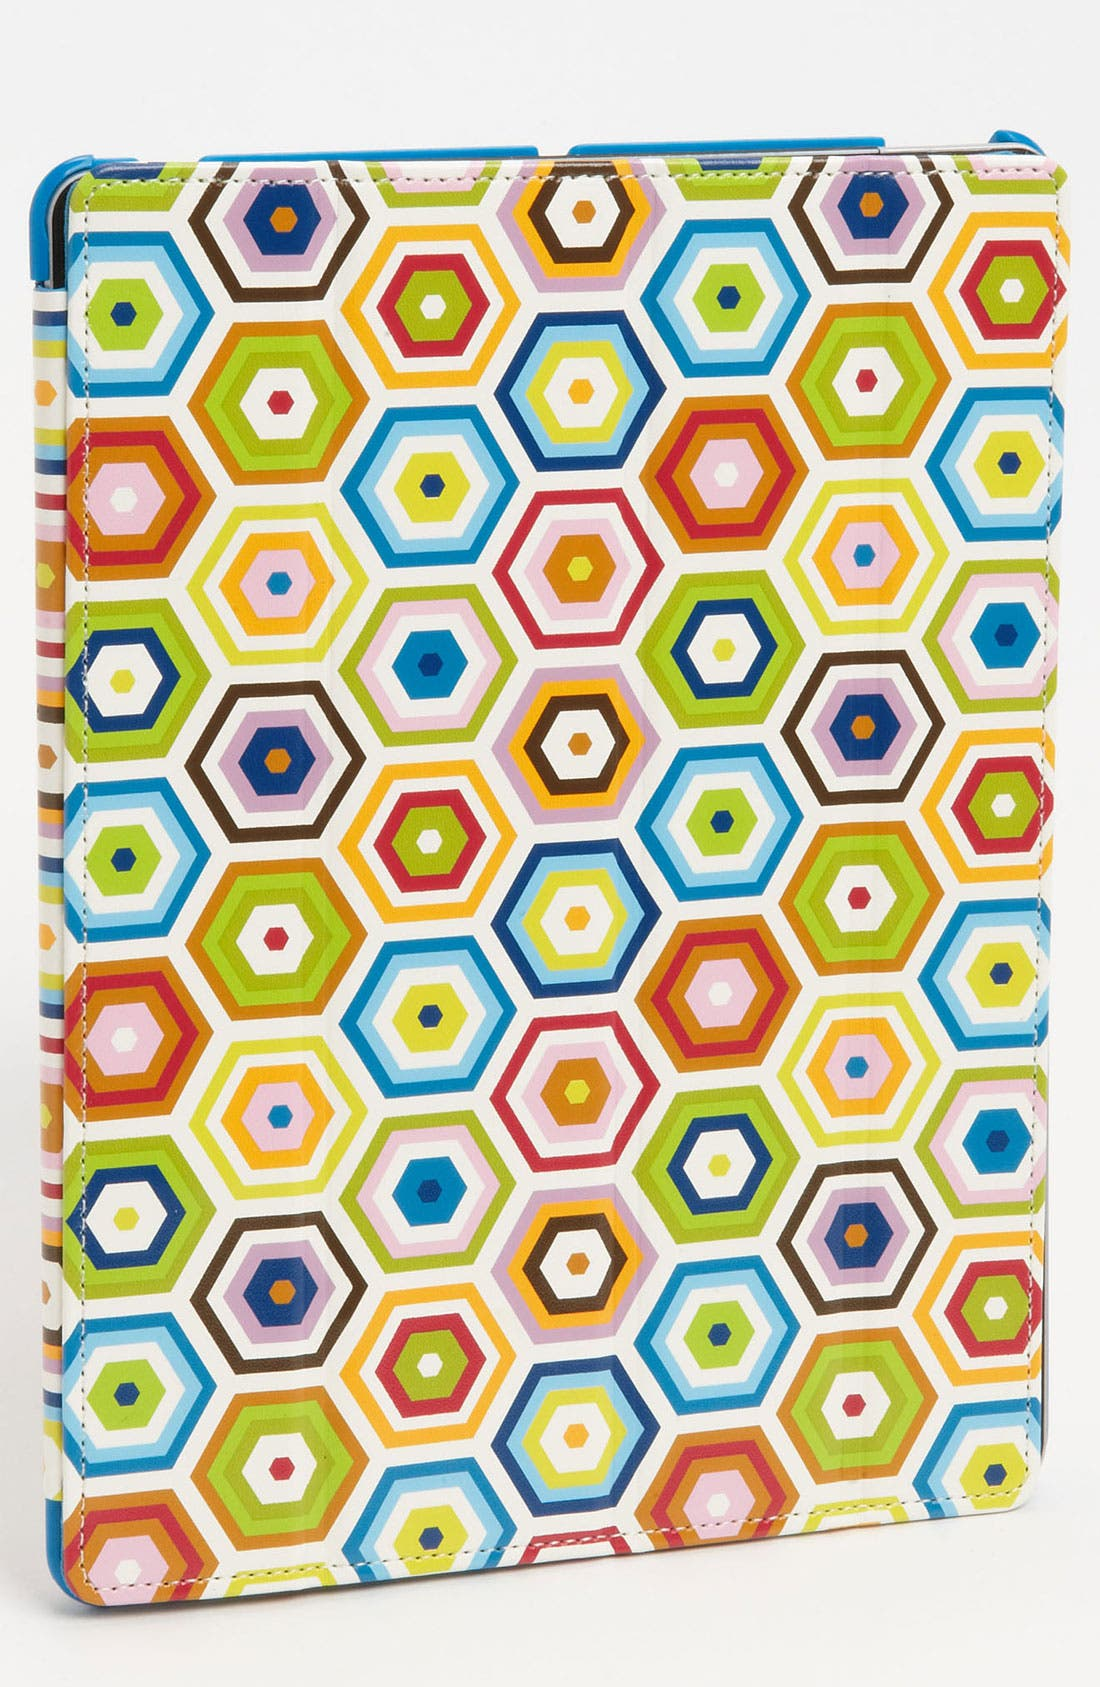 Main Image - Jonathan Adler 'Honeycomb' iPad 2 Case